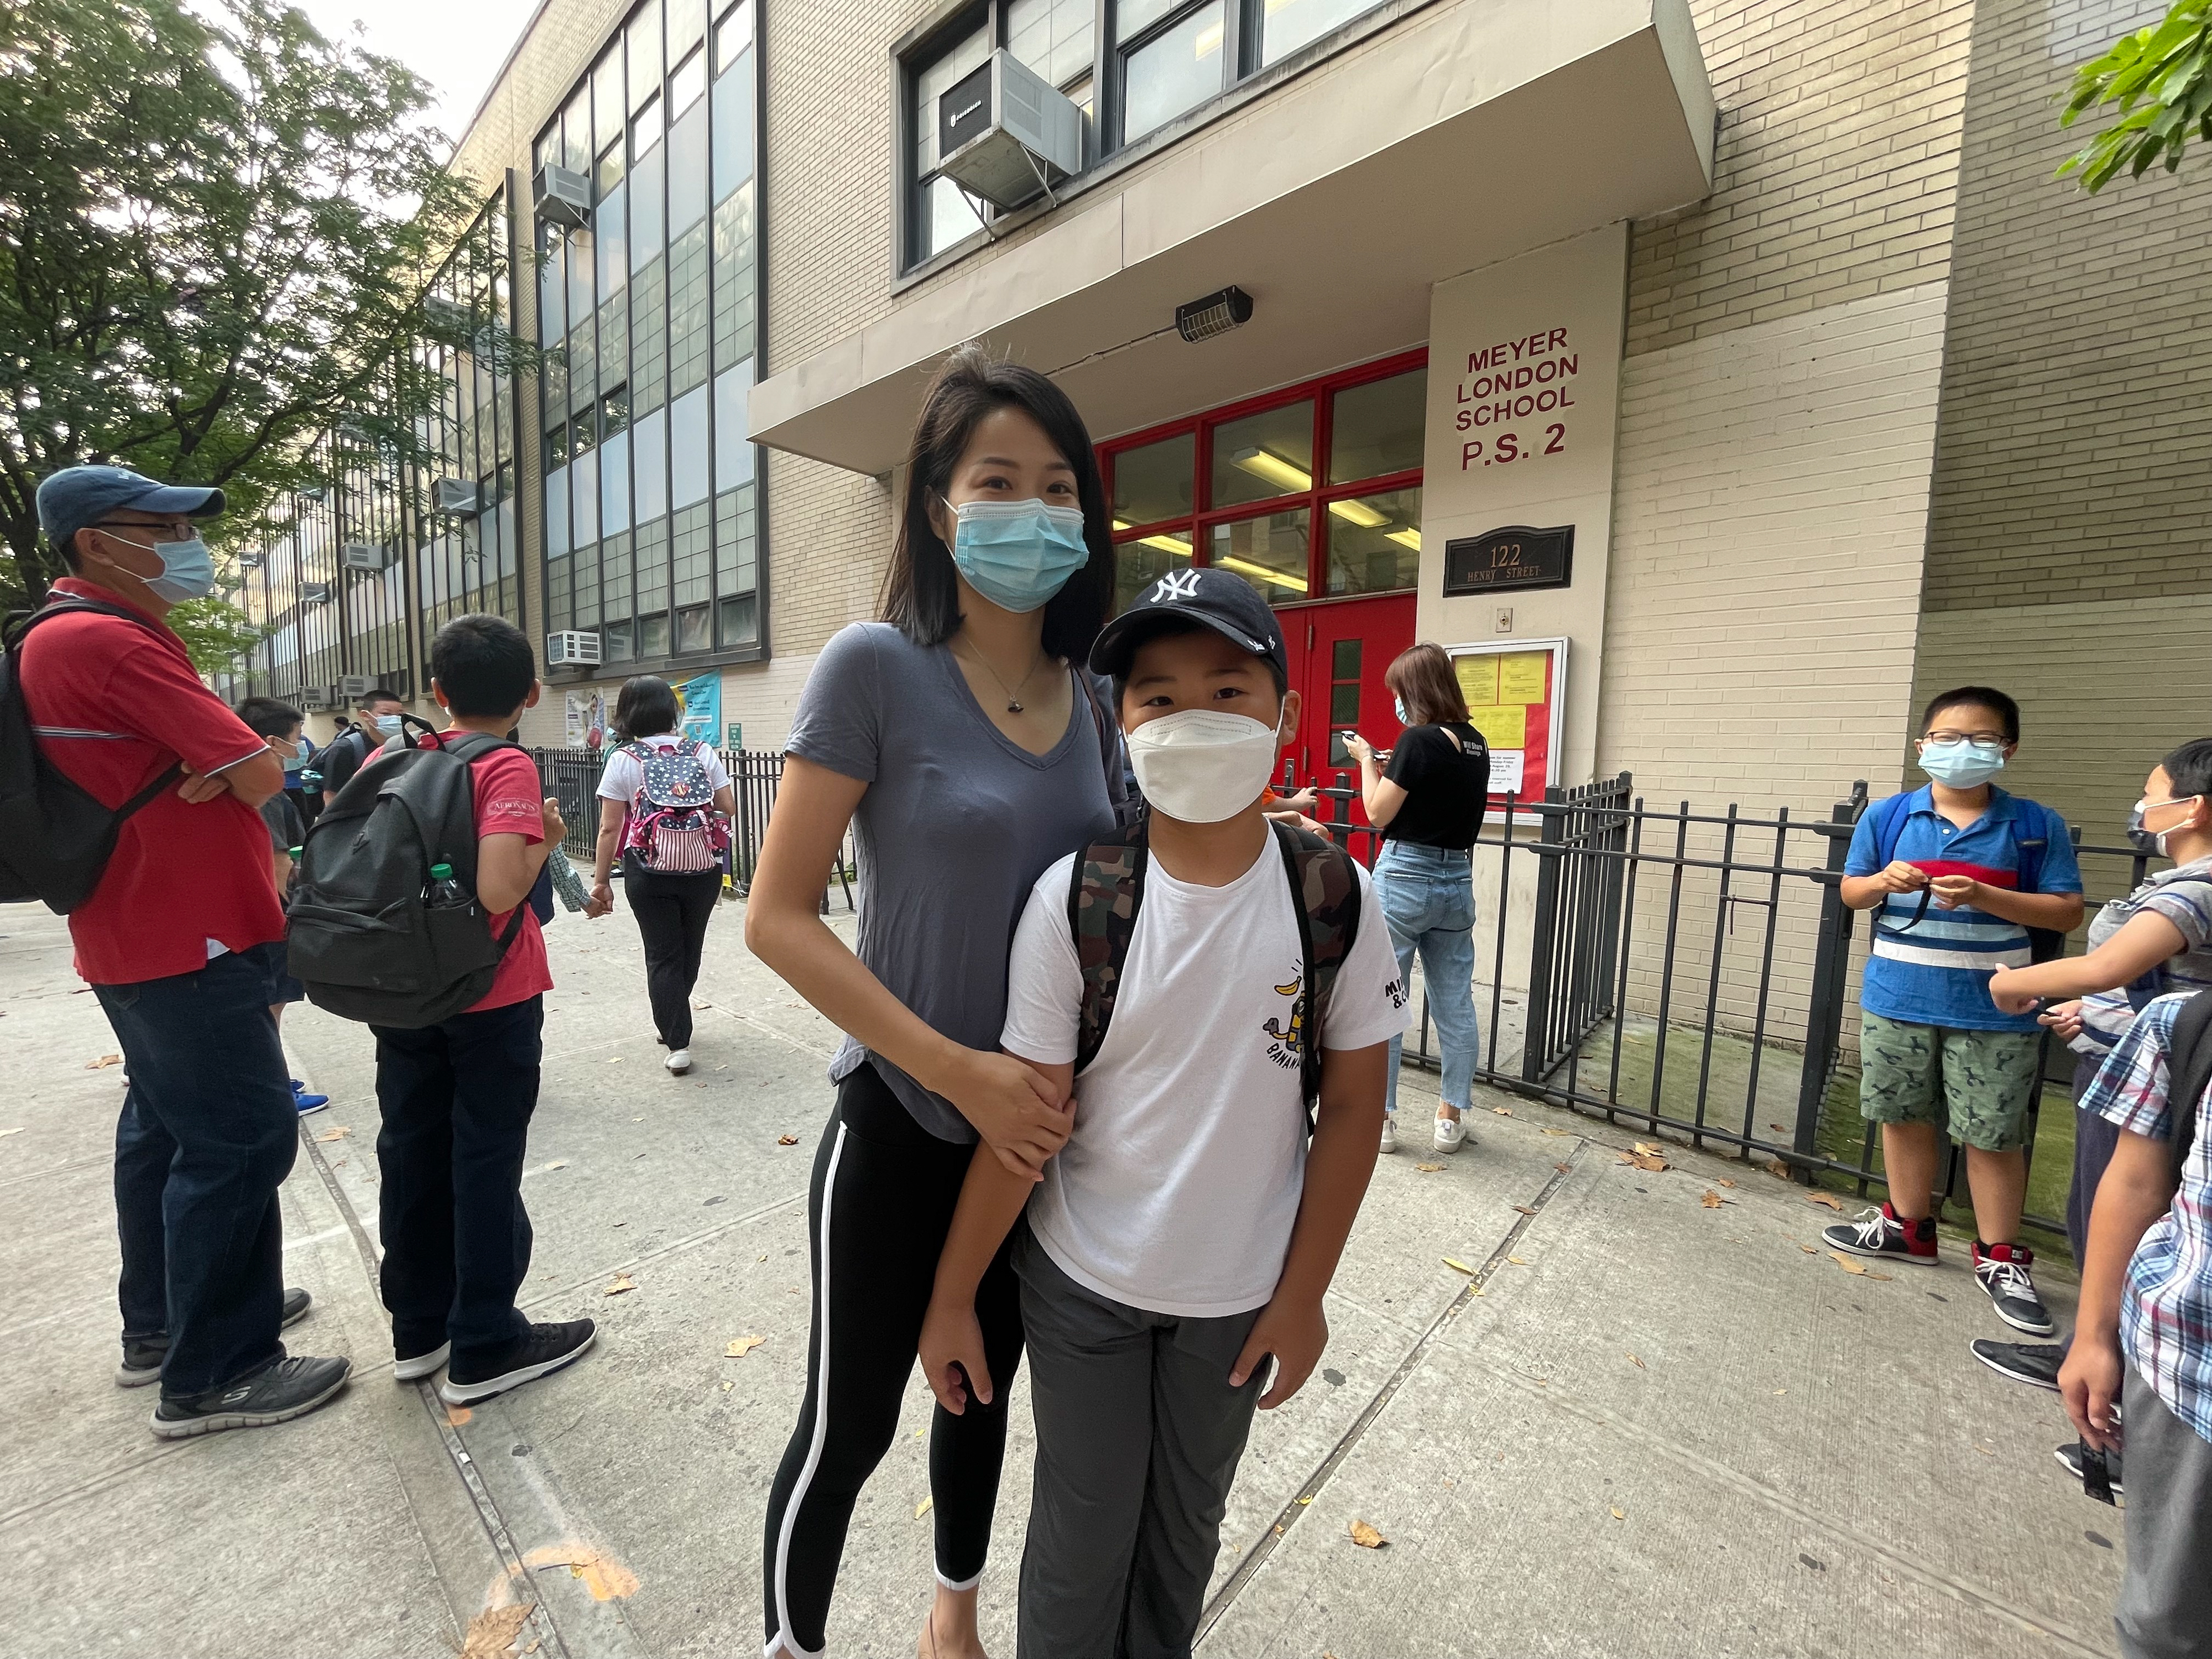 A woman and her son stand in front of a school building among other parents and children for a summer program, all wearing protective masks.